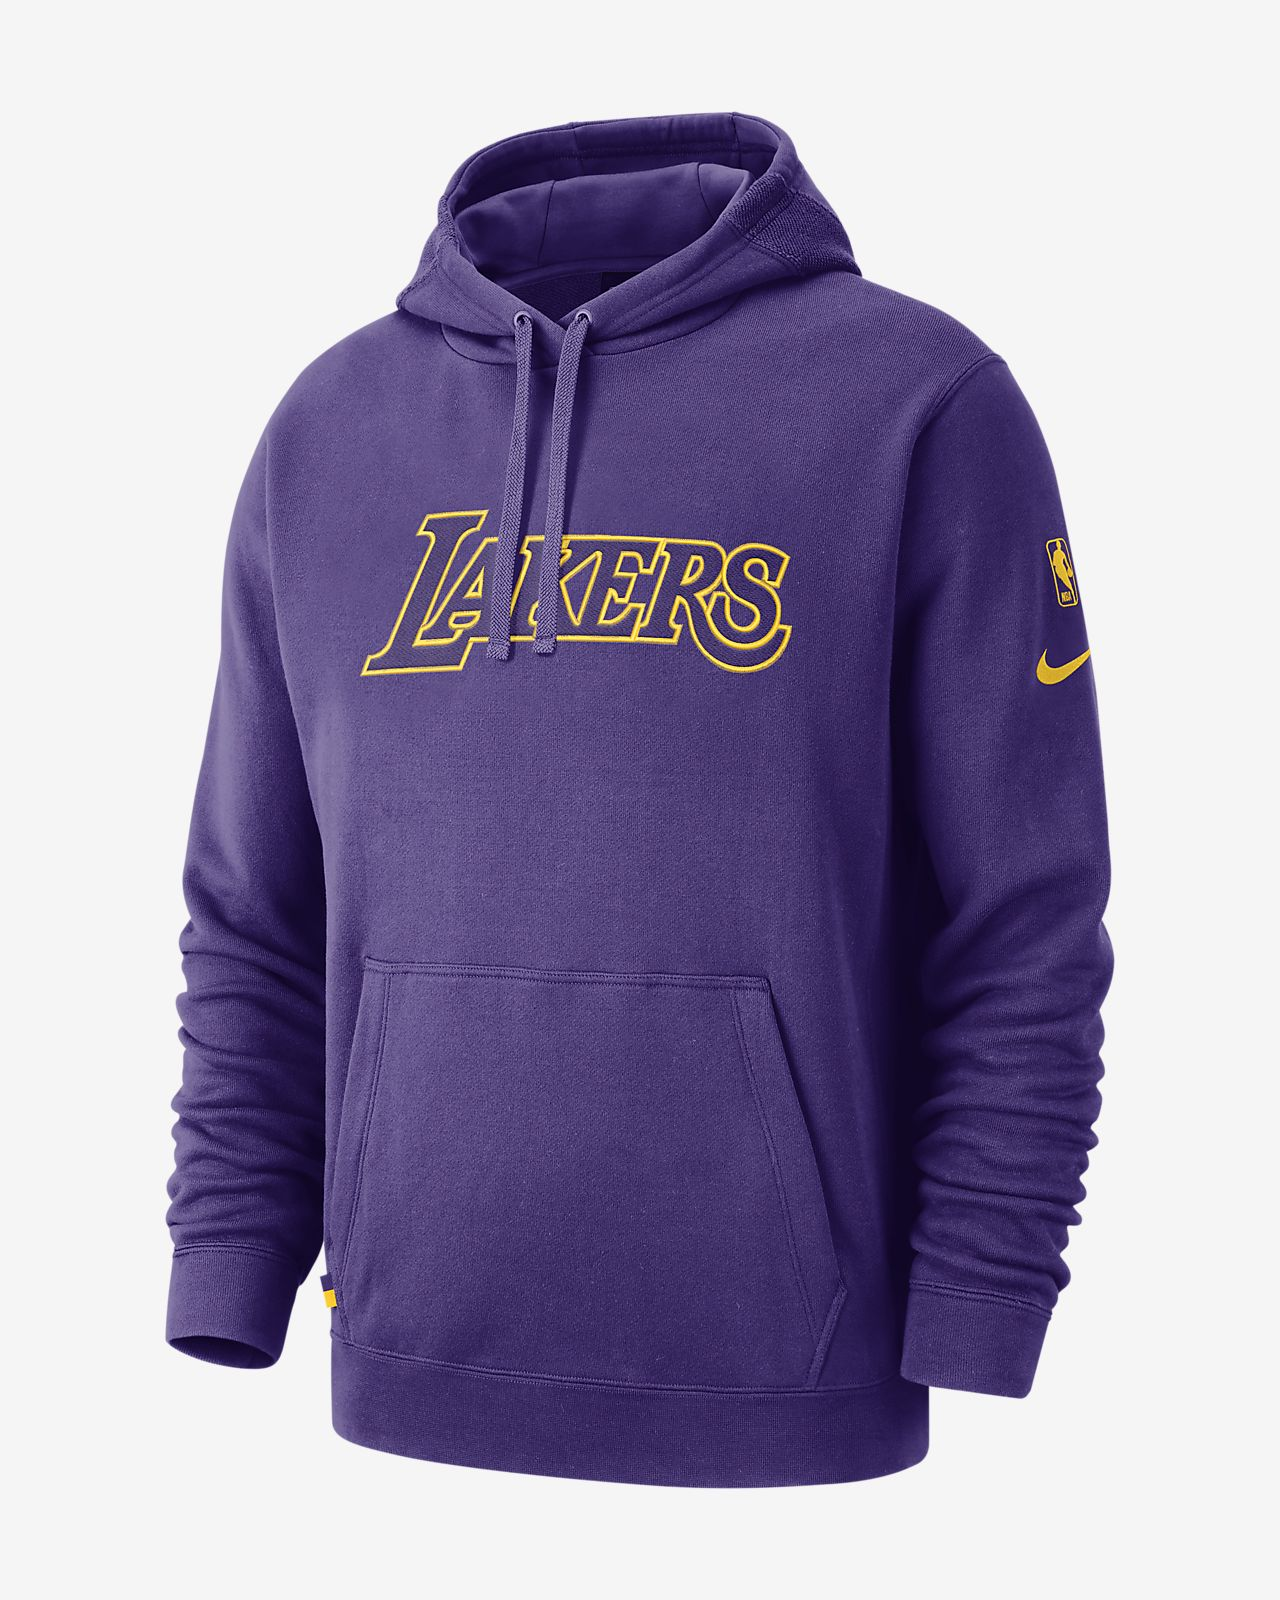 872f2b9f1831 Los Angeles Lakers Nike Men s NBA Hoodie. Nike.com